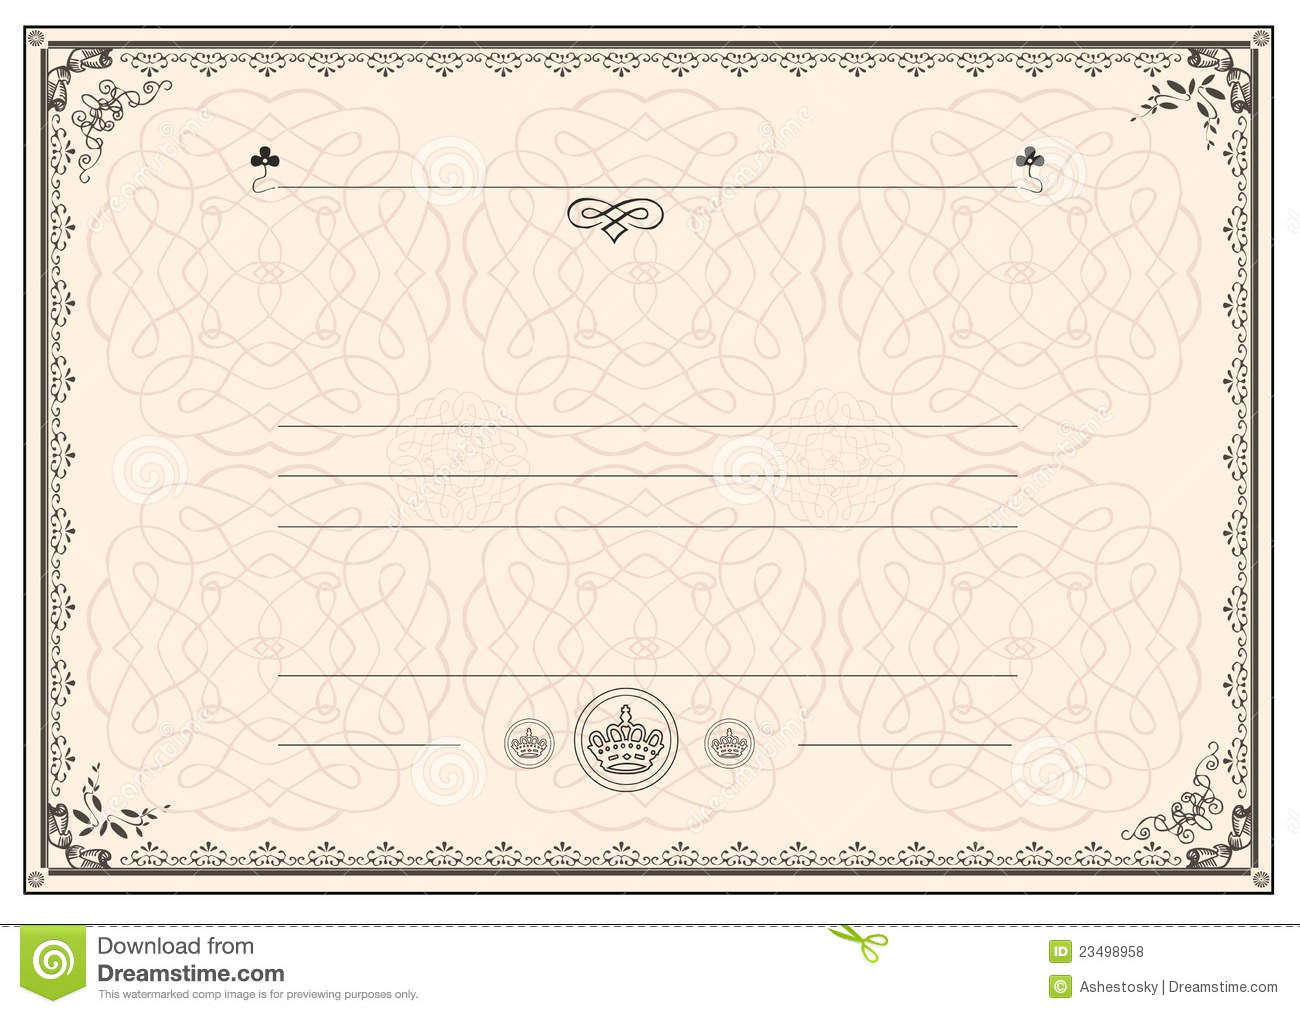 Certificate frame border stock vector. Illustration of studies ...